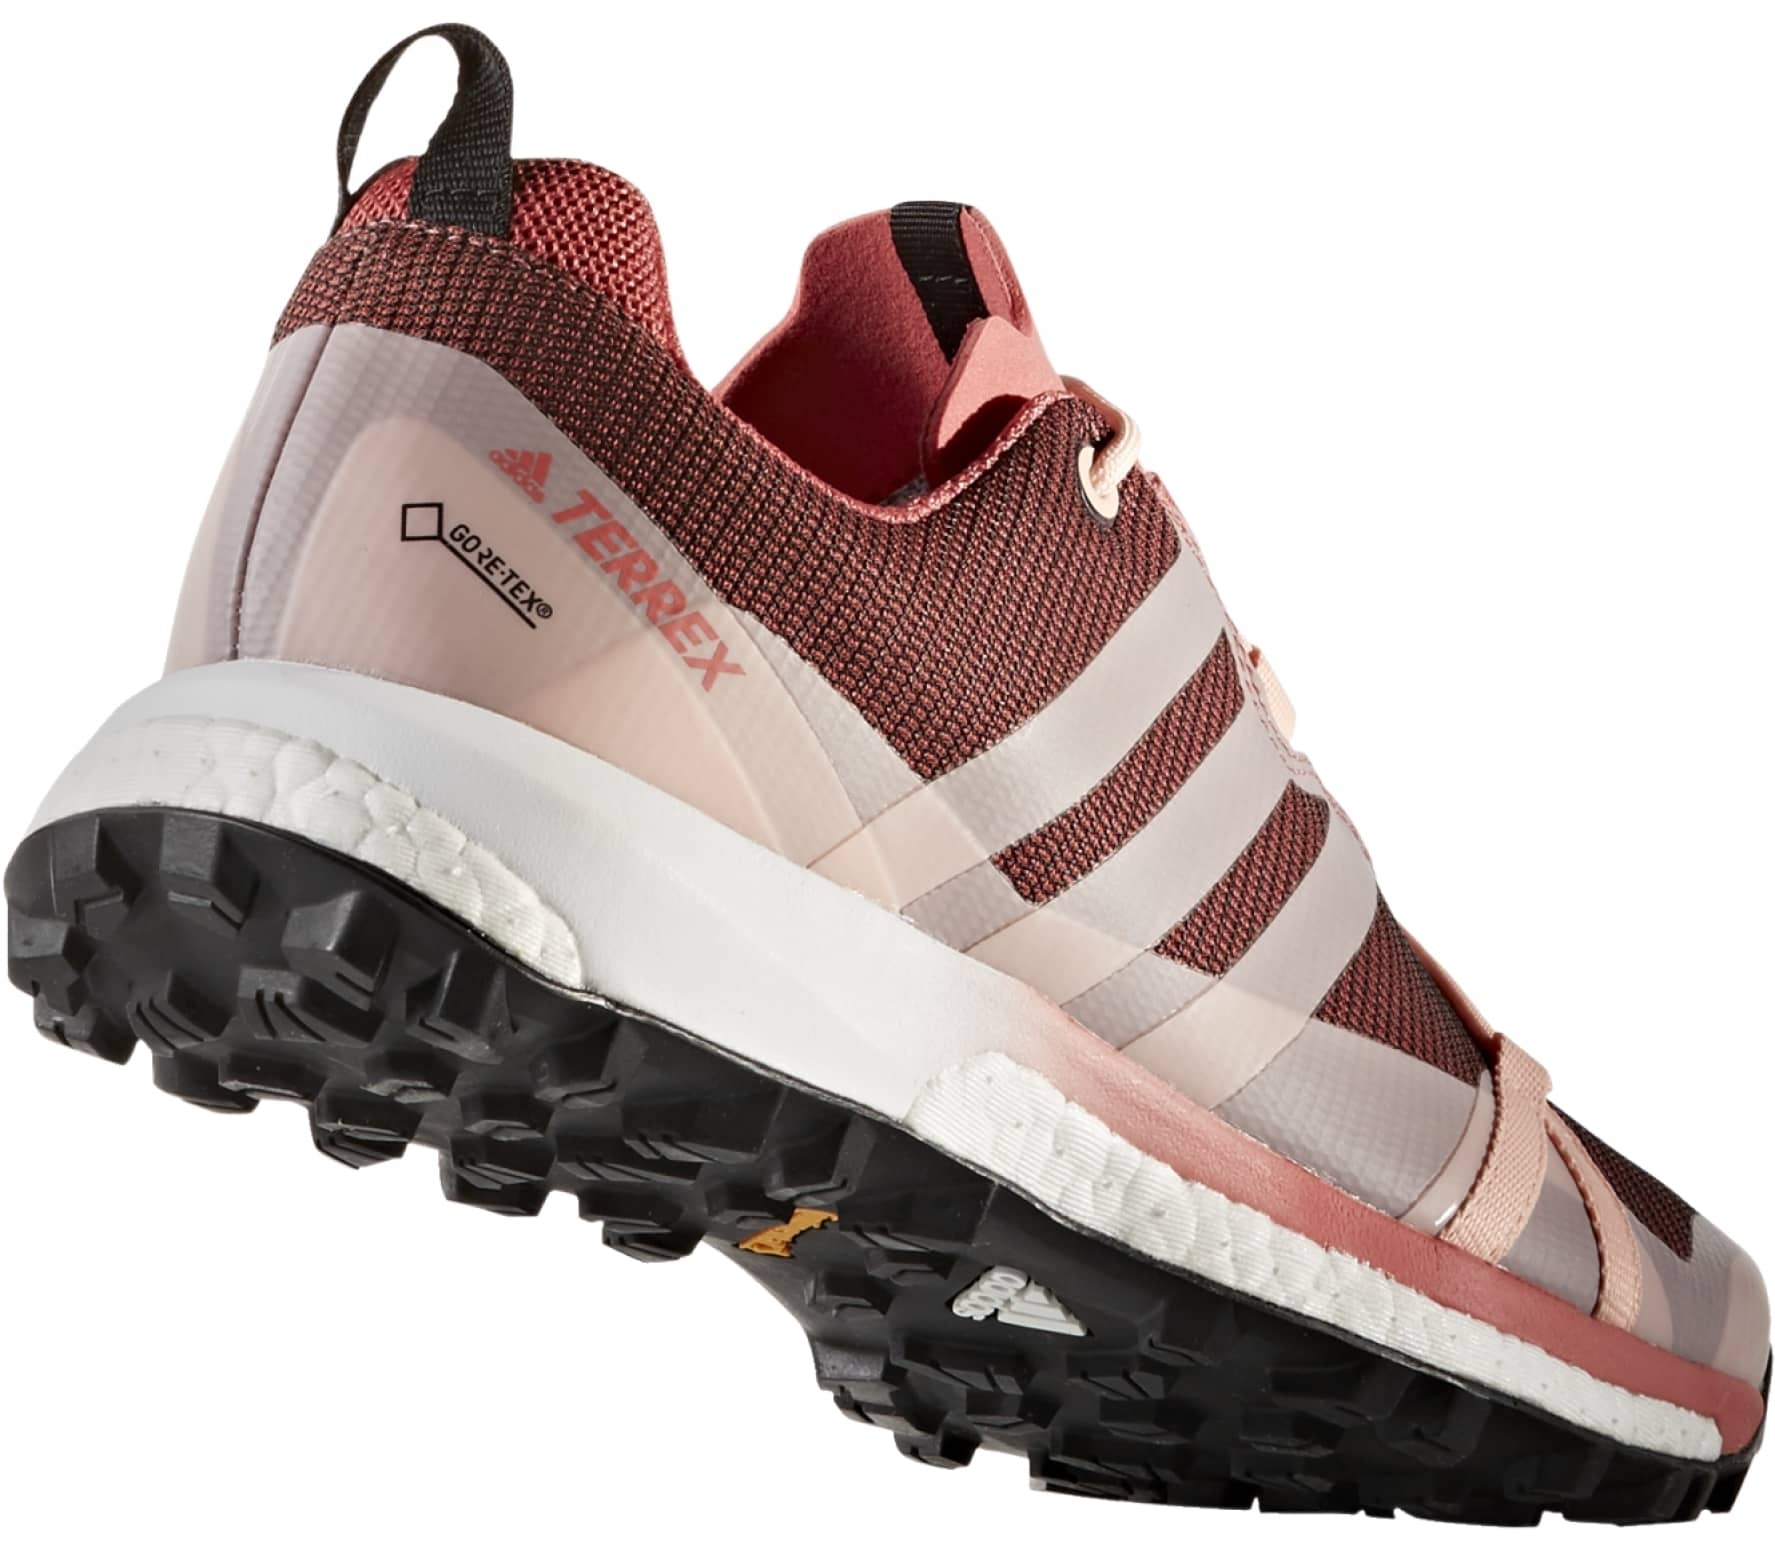 Adidas - Terrex Agravic GTX women's Mountain Running shoes (coral/red)